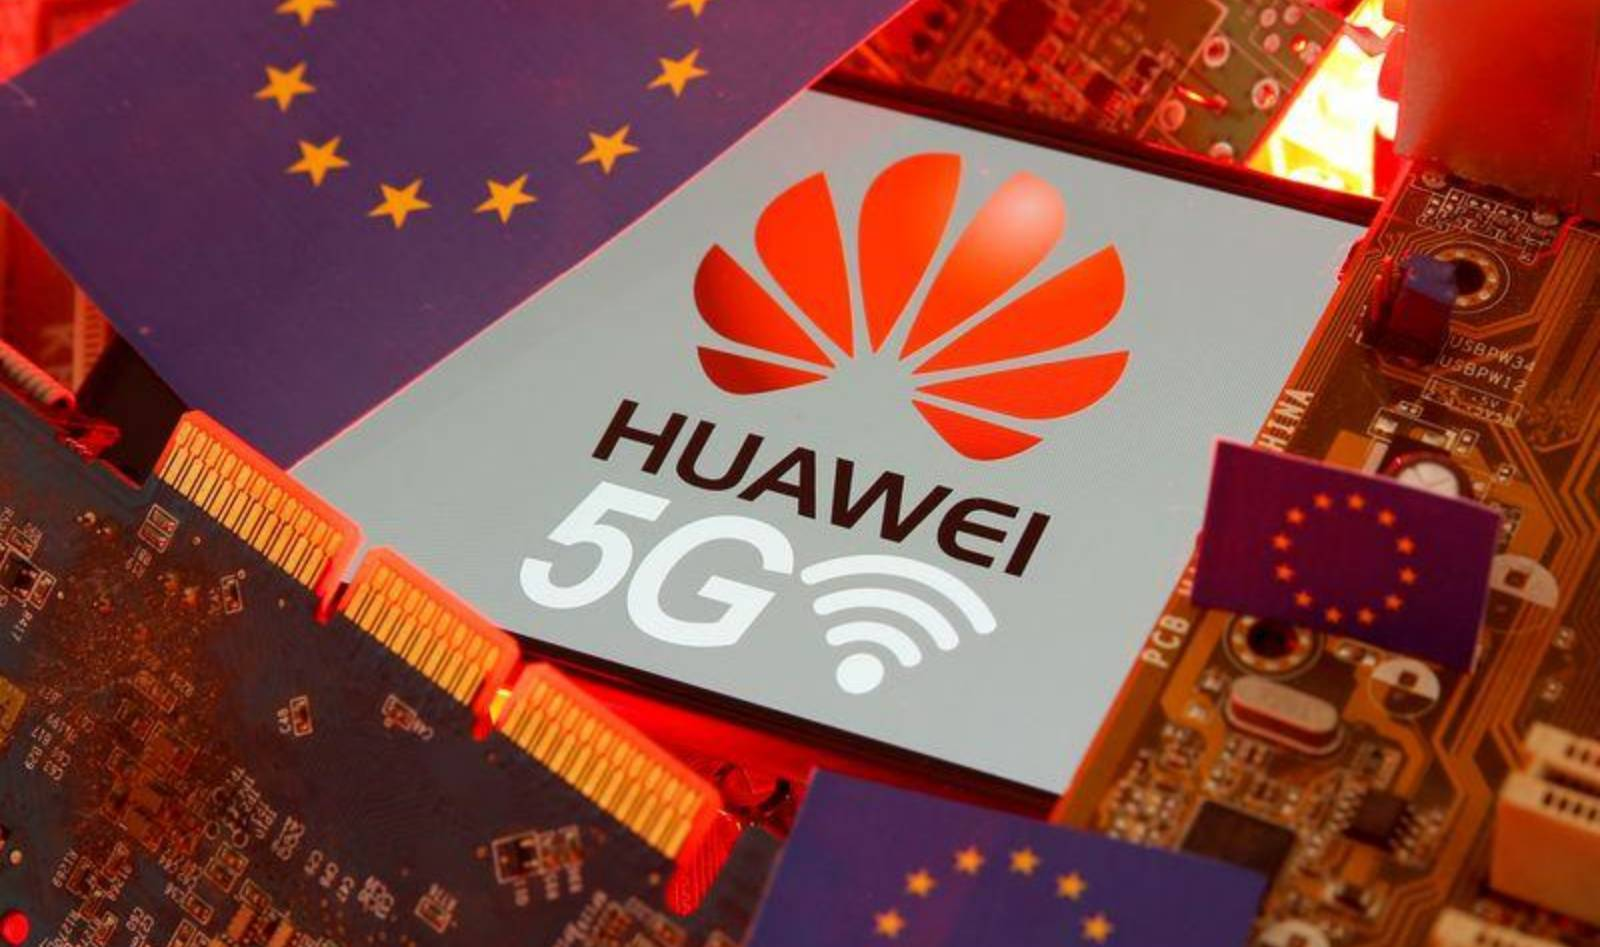 Huawei atentionare